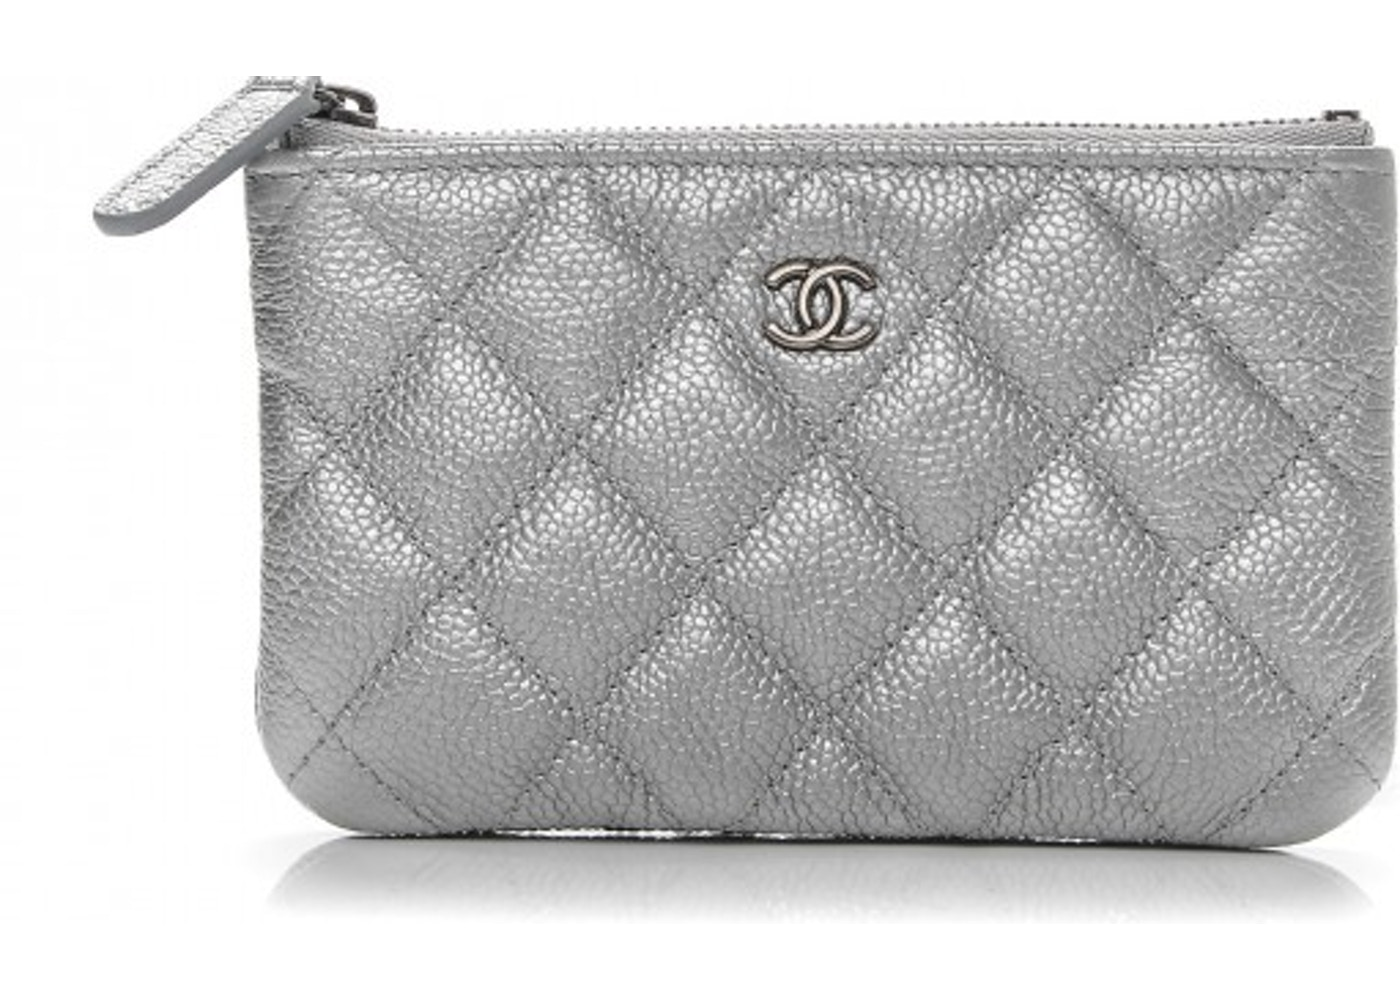 ee2fef6259d783 Chanel Cosmetic Case Quilted Diamond Metallic Small Silver. Quilted Diamond Metallic  Small Silver